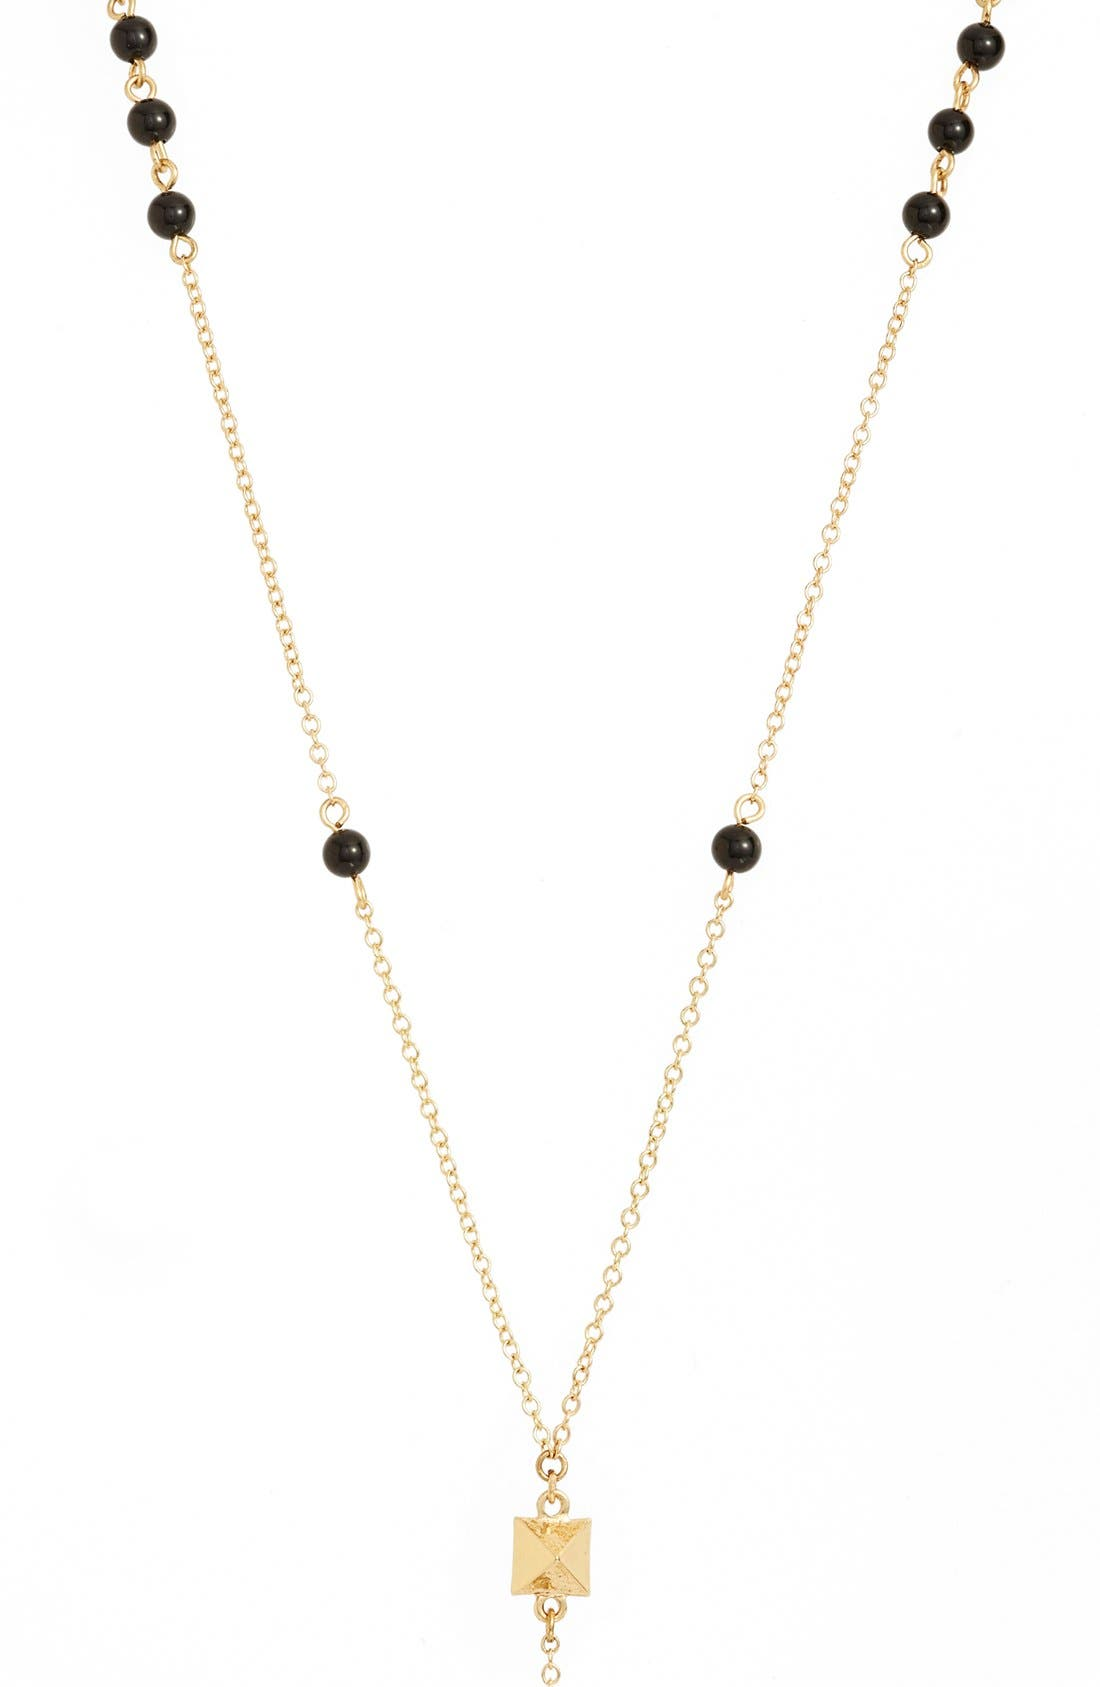 'Waiting in Line' Beaded Onyx Y-Chain Necklace,                             Alternate thumbnail 2, color,                             710